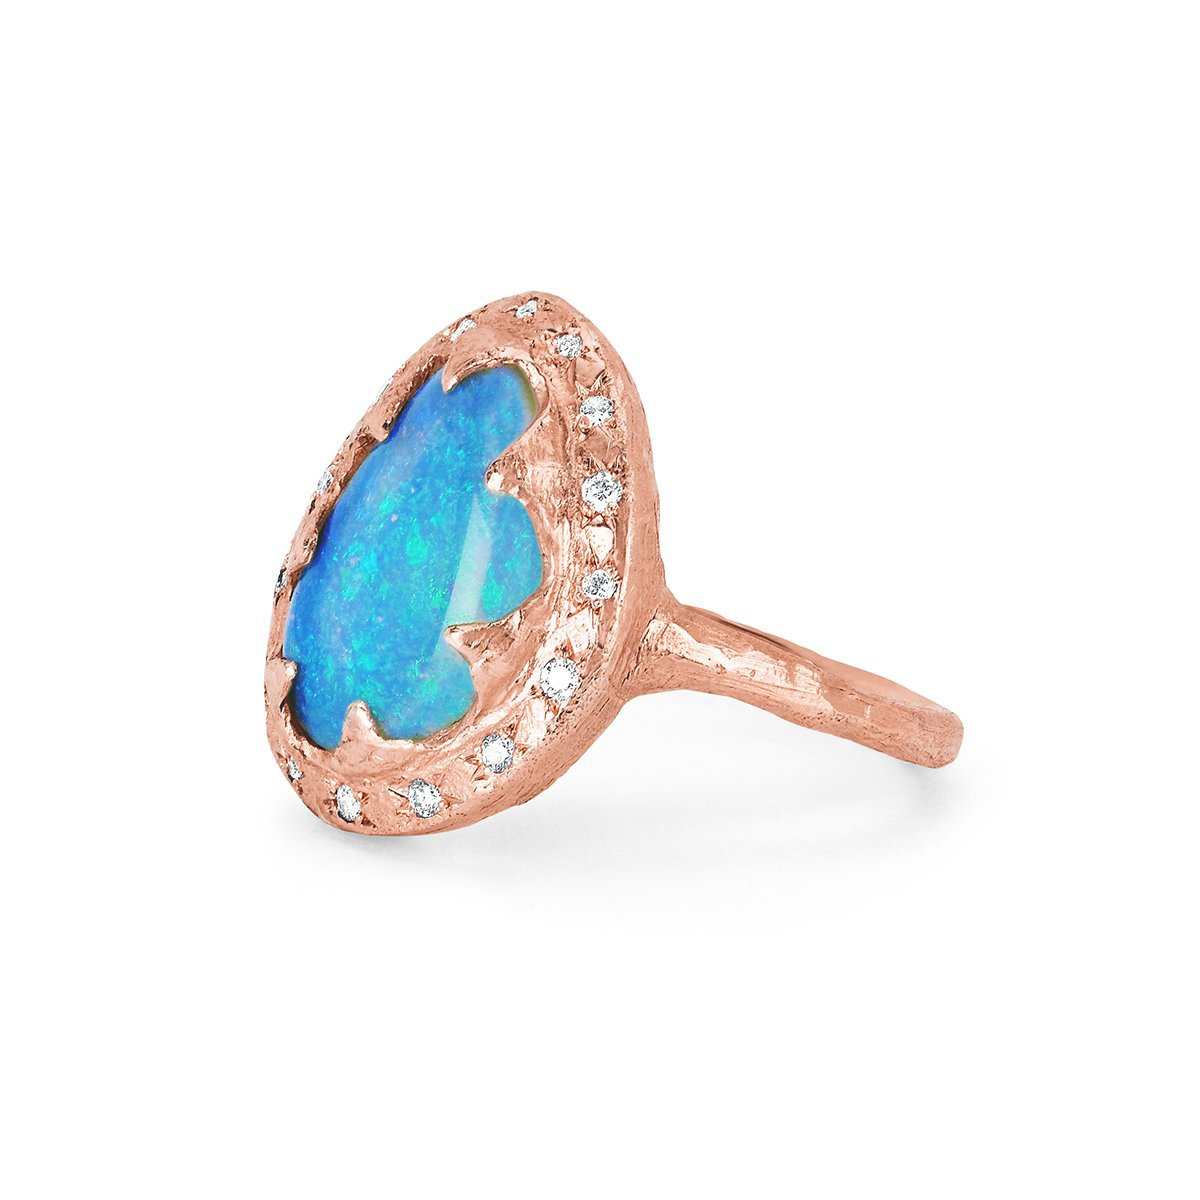 NEW! Free Form Blue Opal Queen Ring with Sprinkled Diamonds